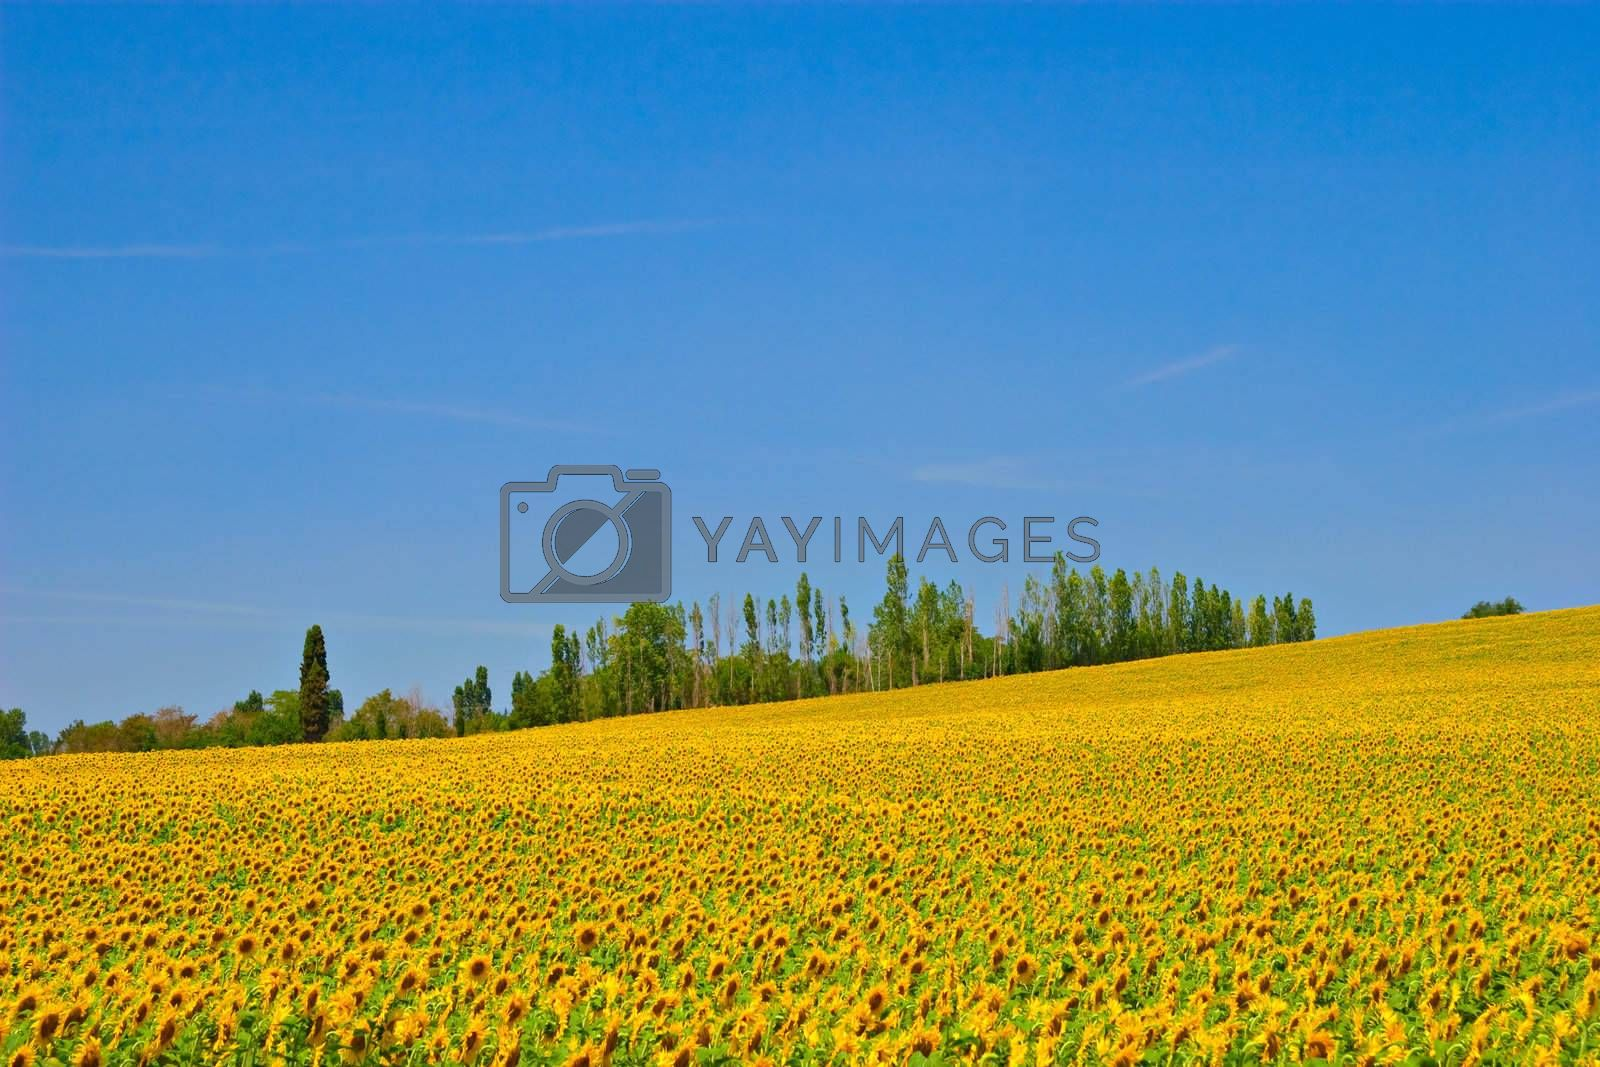 Royalty free image of Sunflower Field by ajn